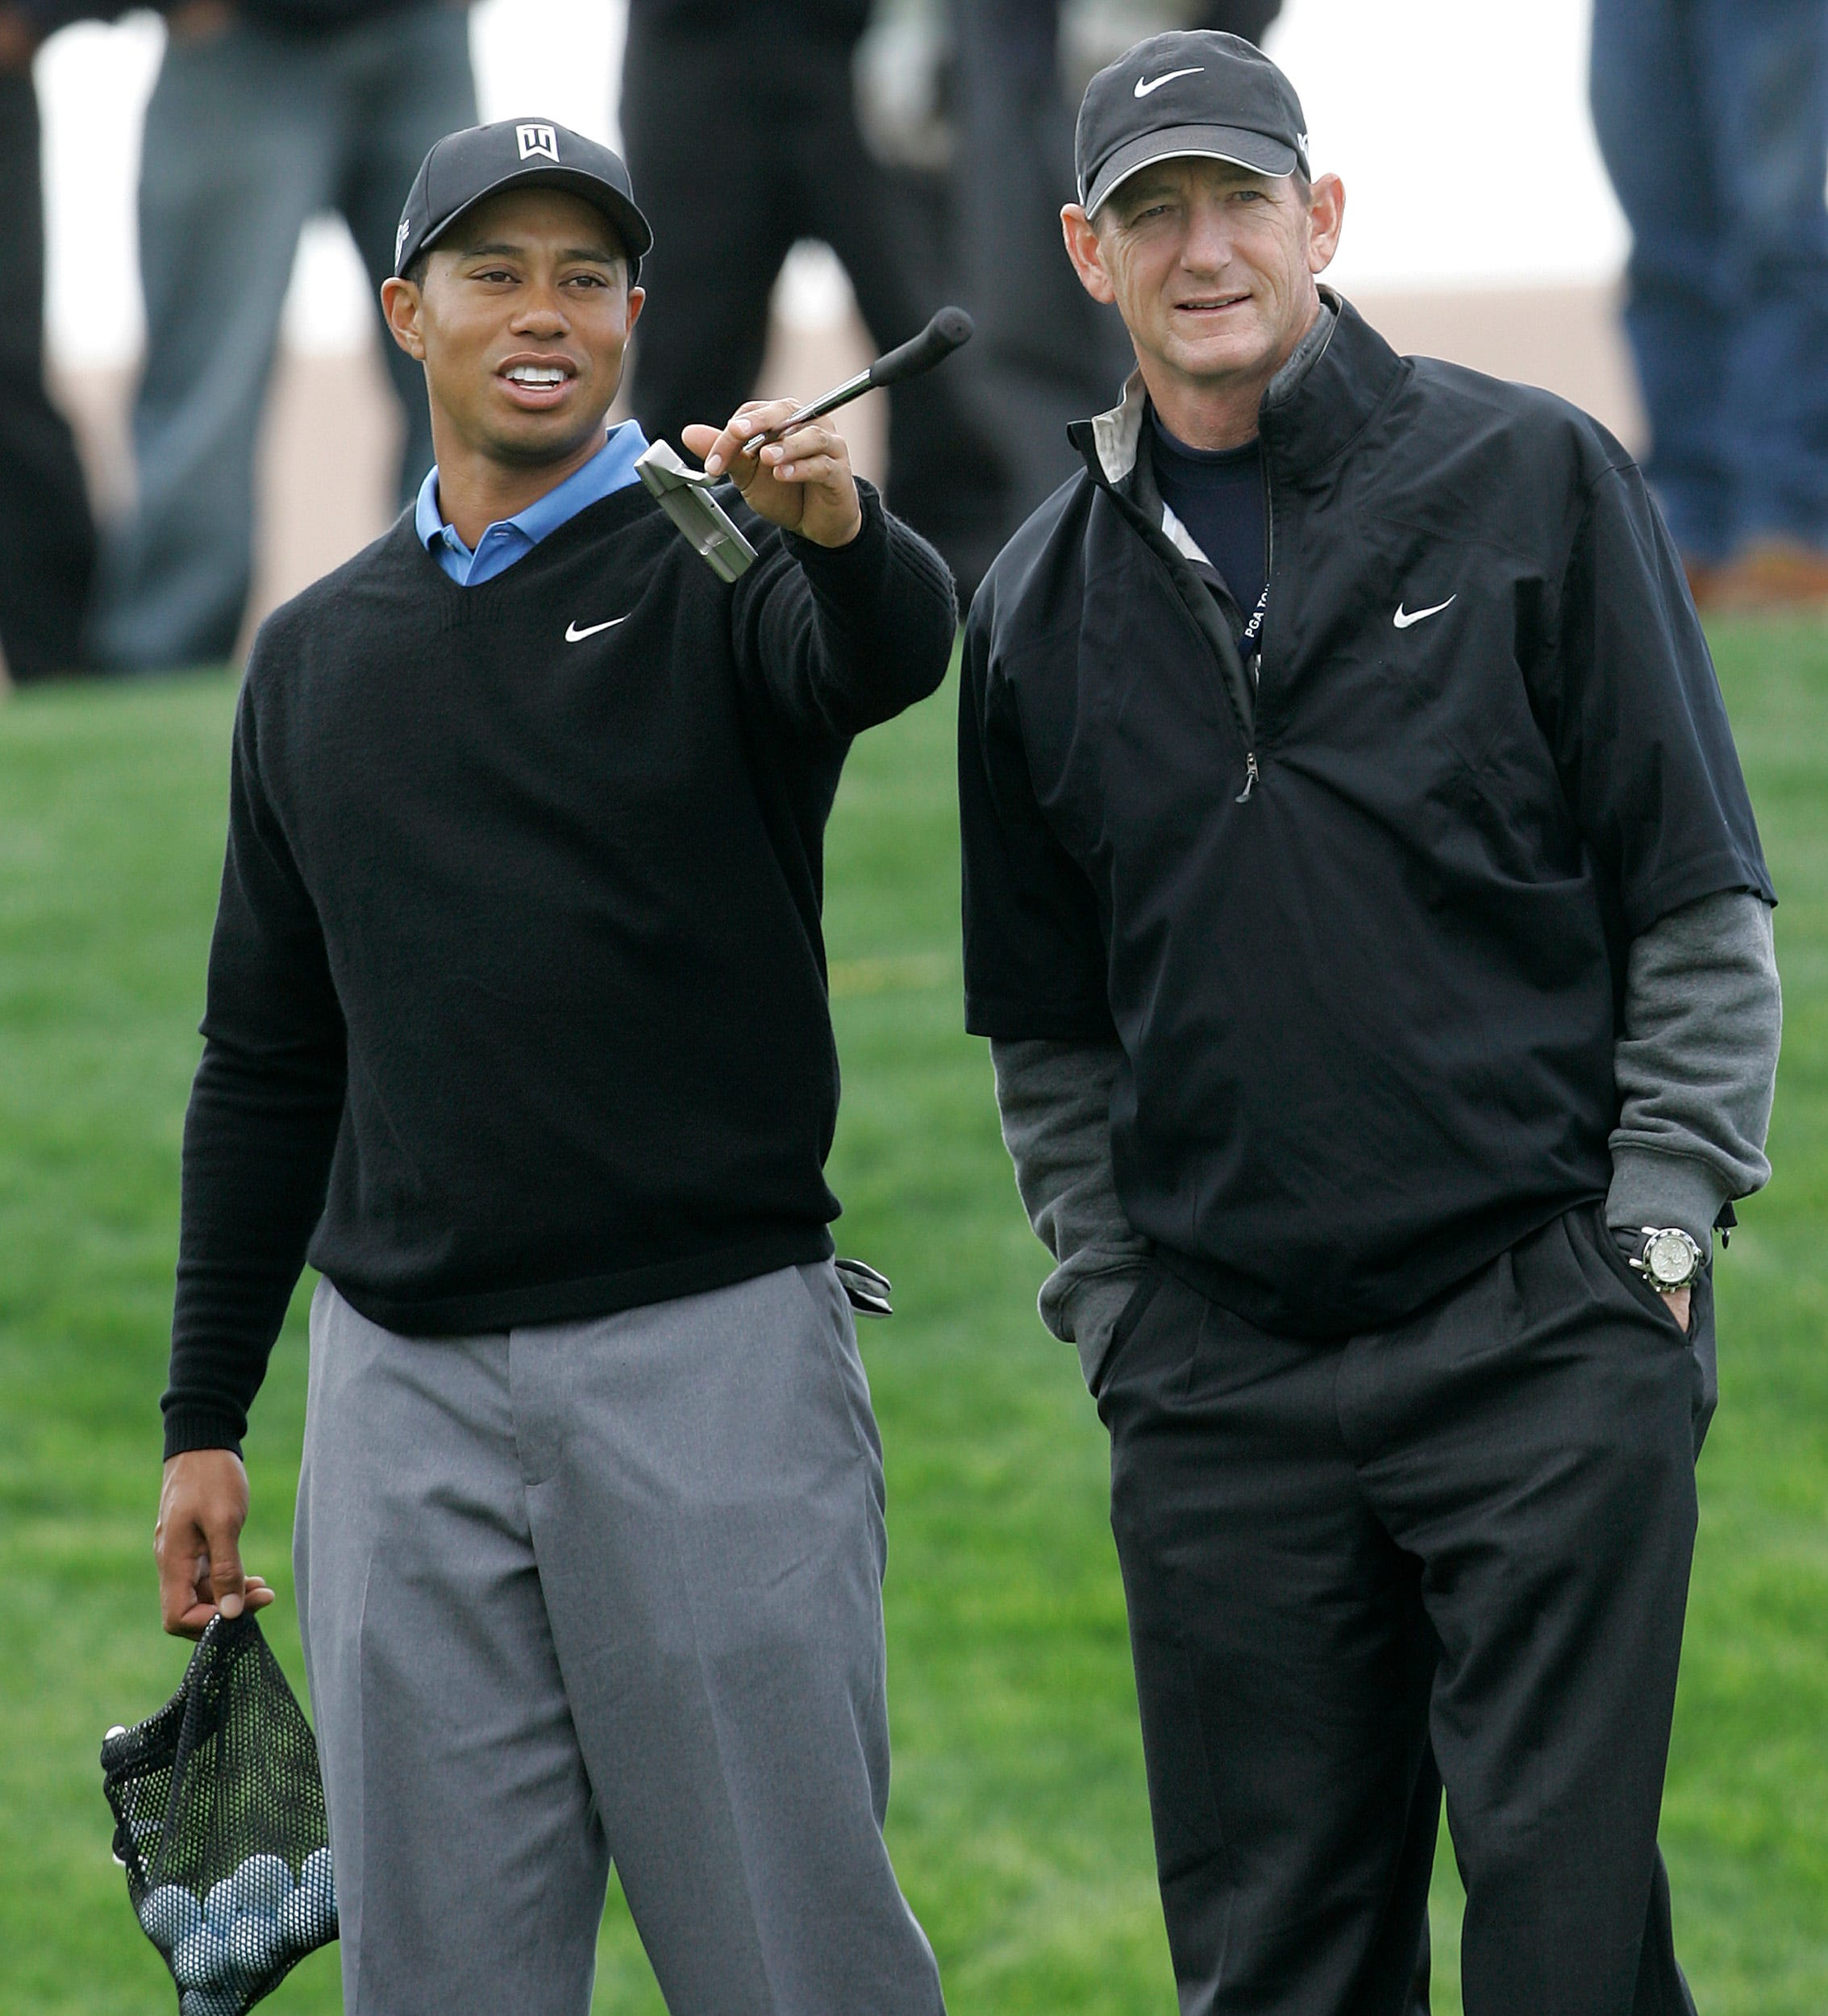 Tiger Woods' ex-coach Hank Haney picks him to win British Open, citing experience